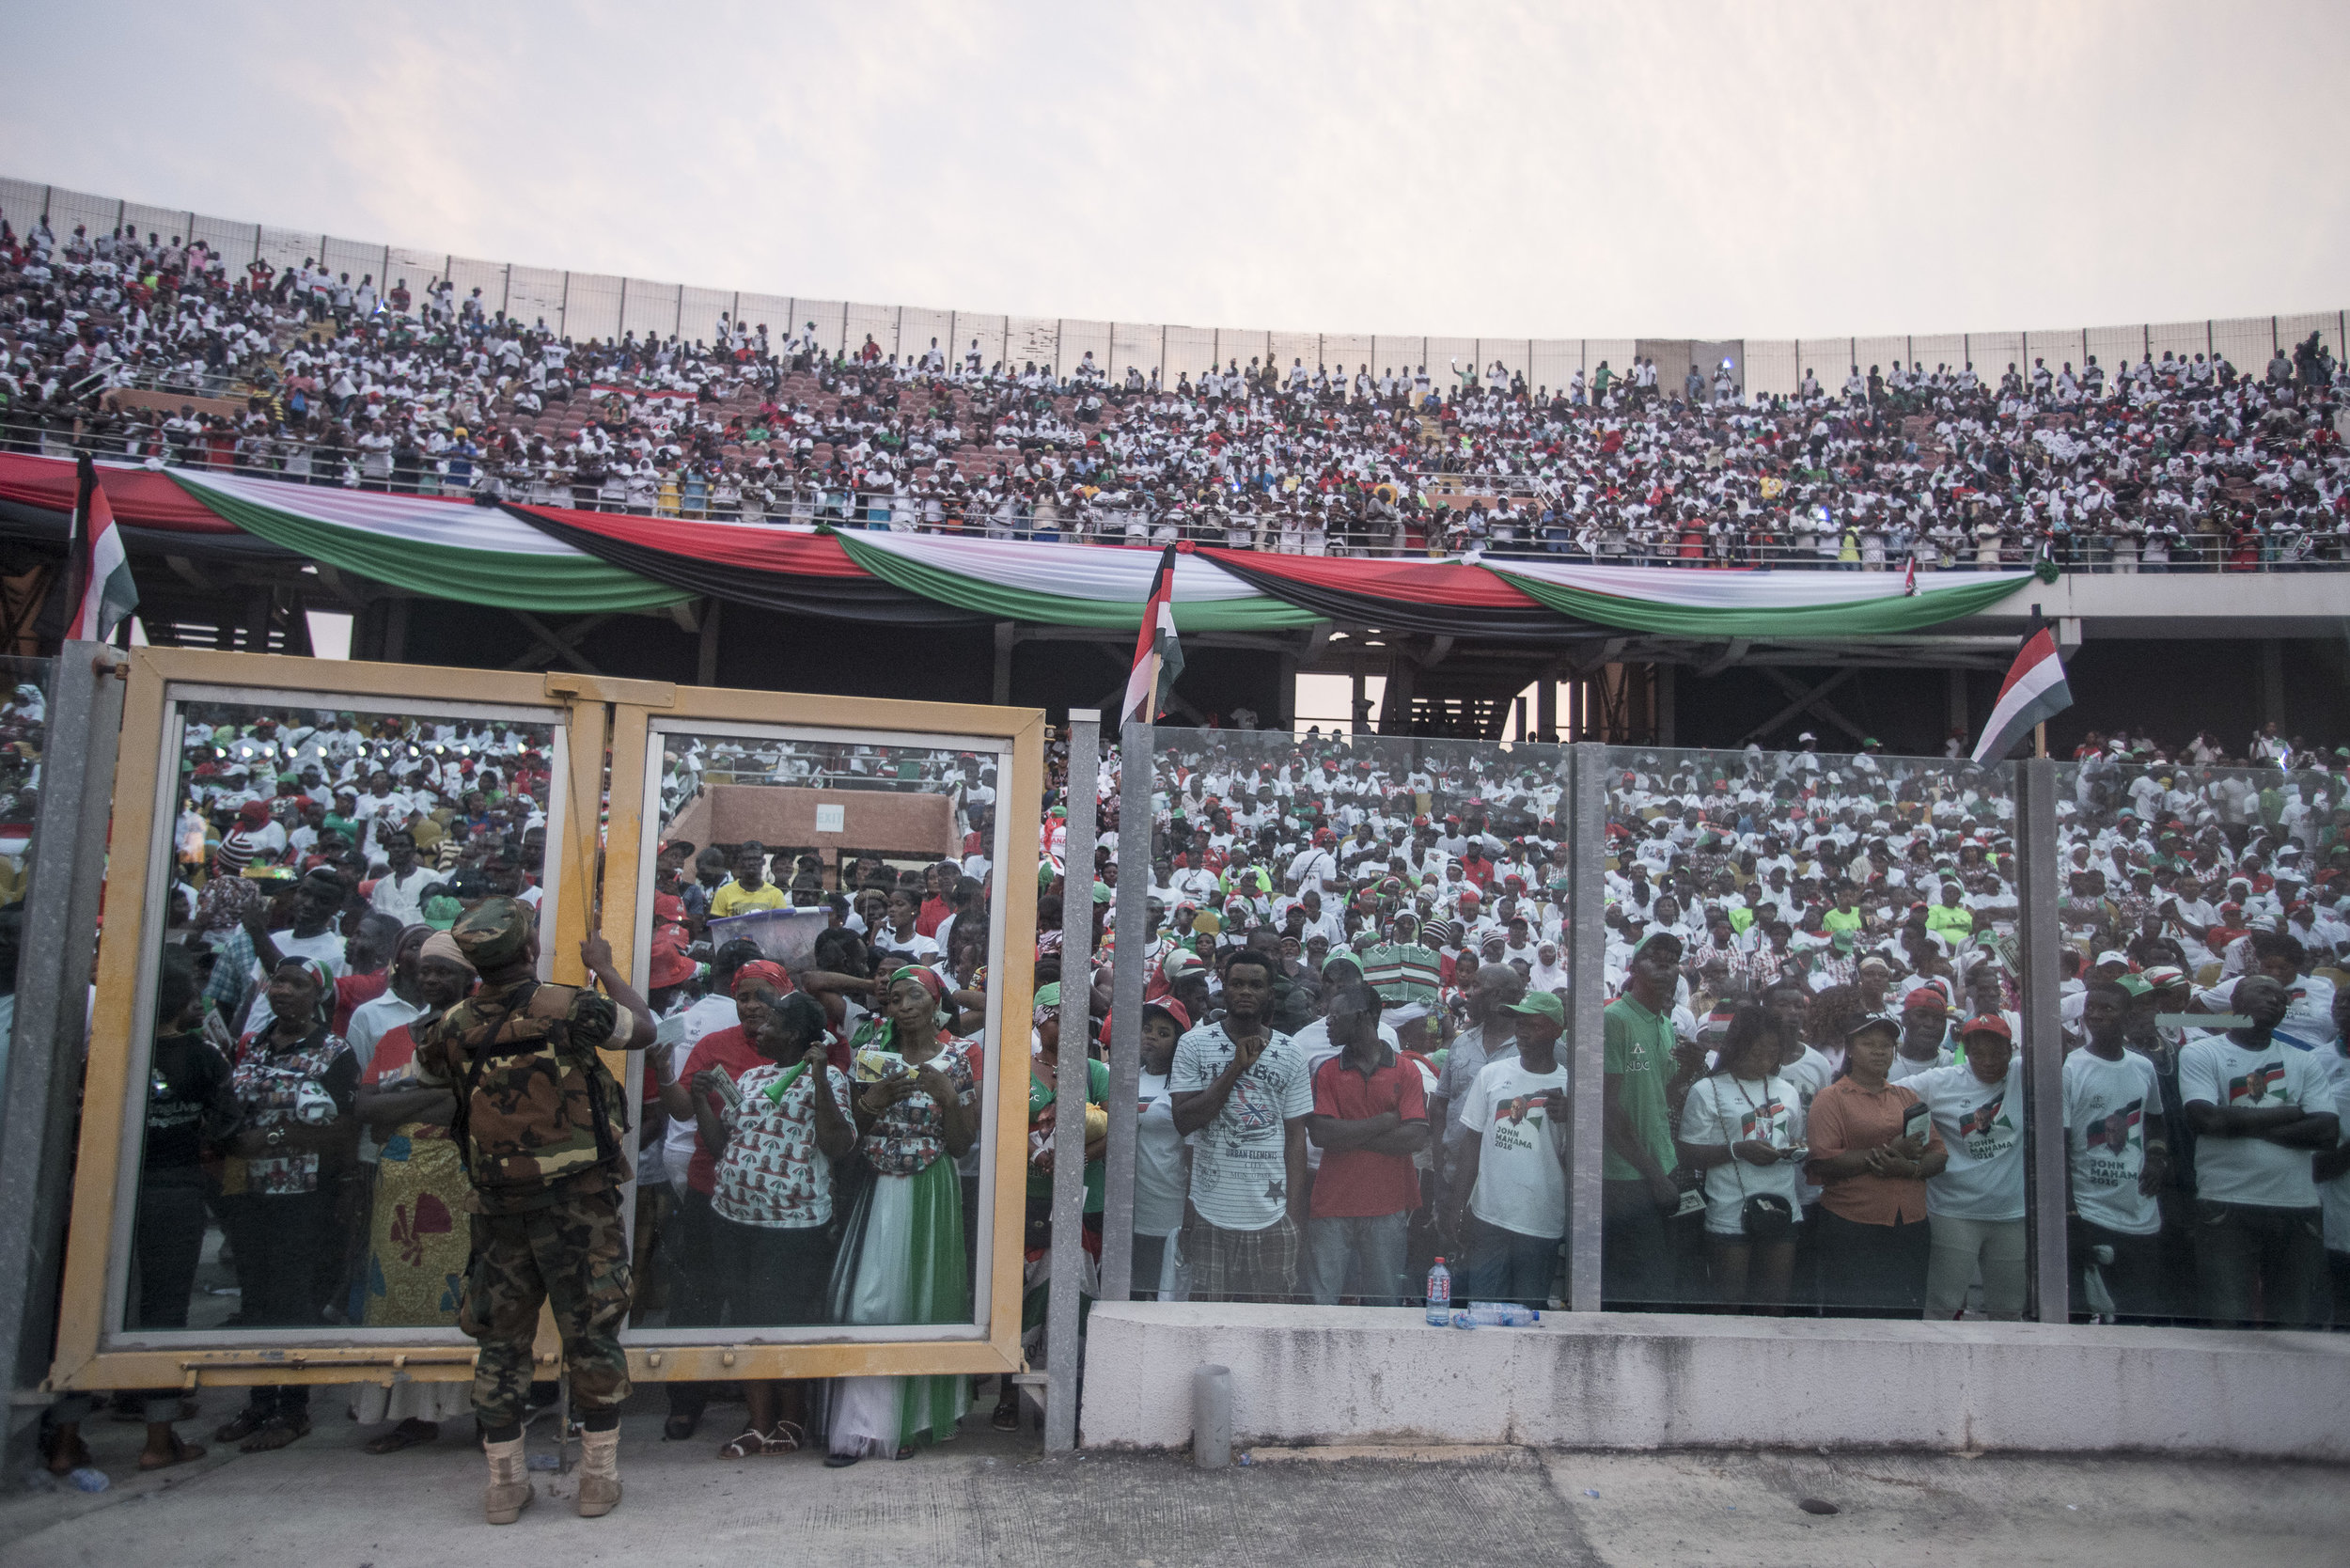 NDC (National Democratic Congress) last rally at Accra's Sports Stadium in Accra ahead of the December 7th General Election